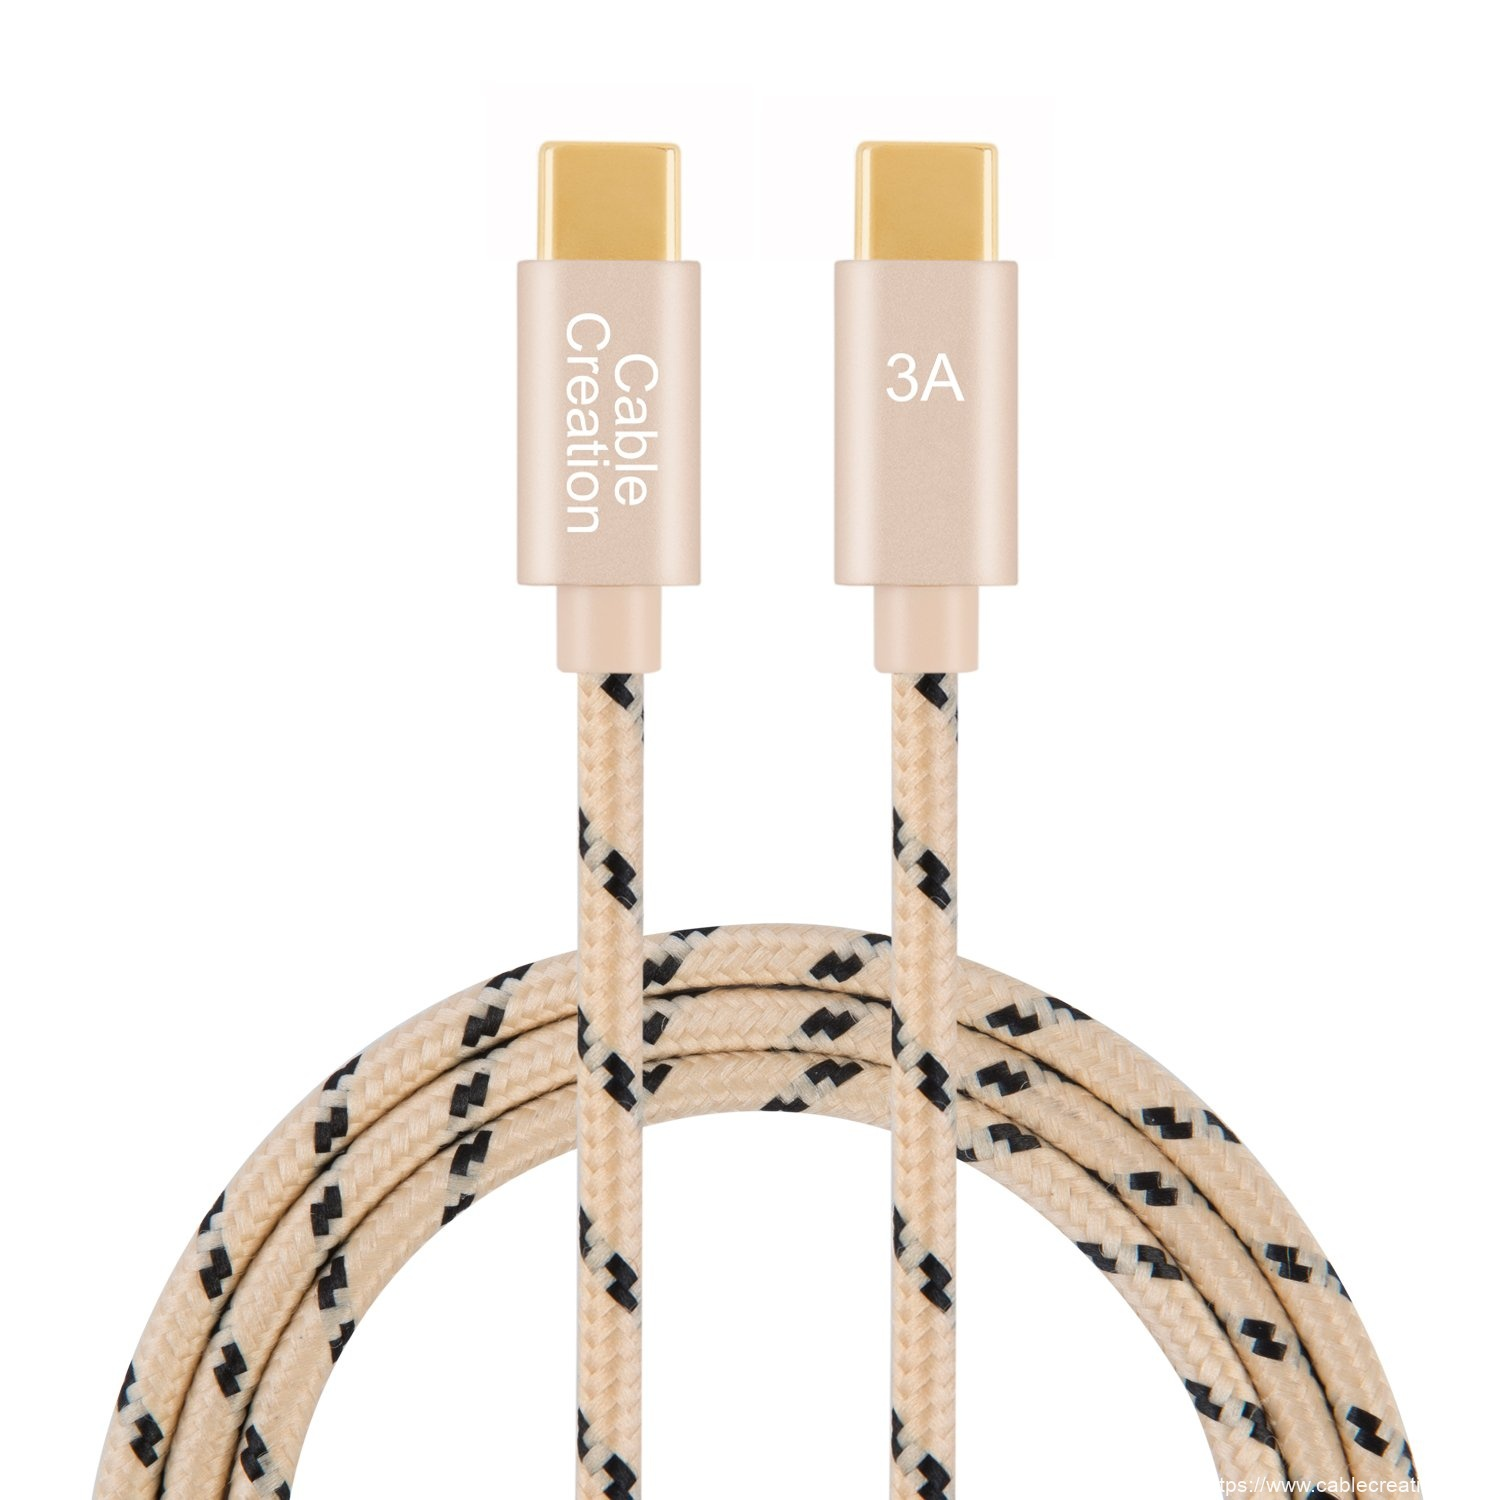 USB C to USB C Cable 3.3 Feet/1 Meter, #CC0728